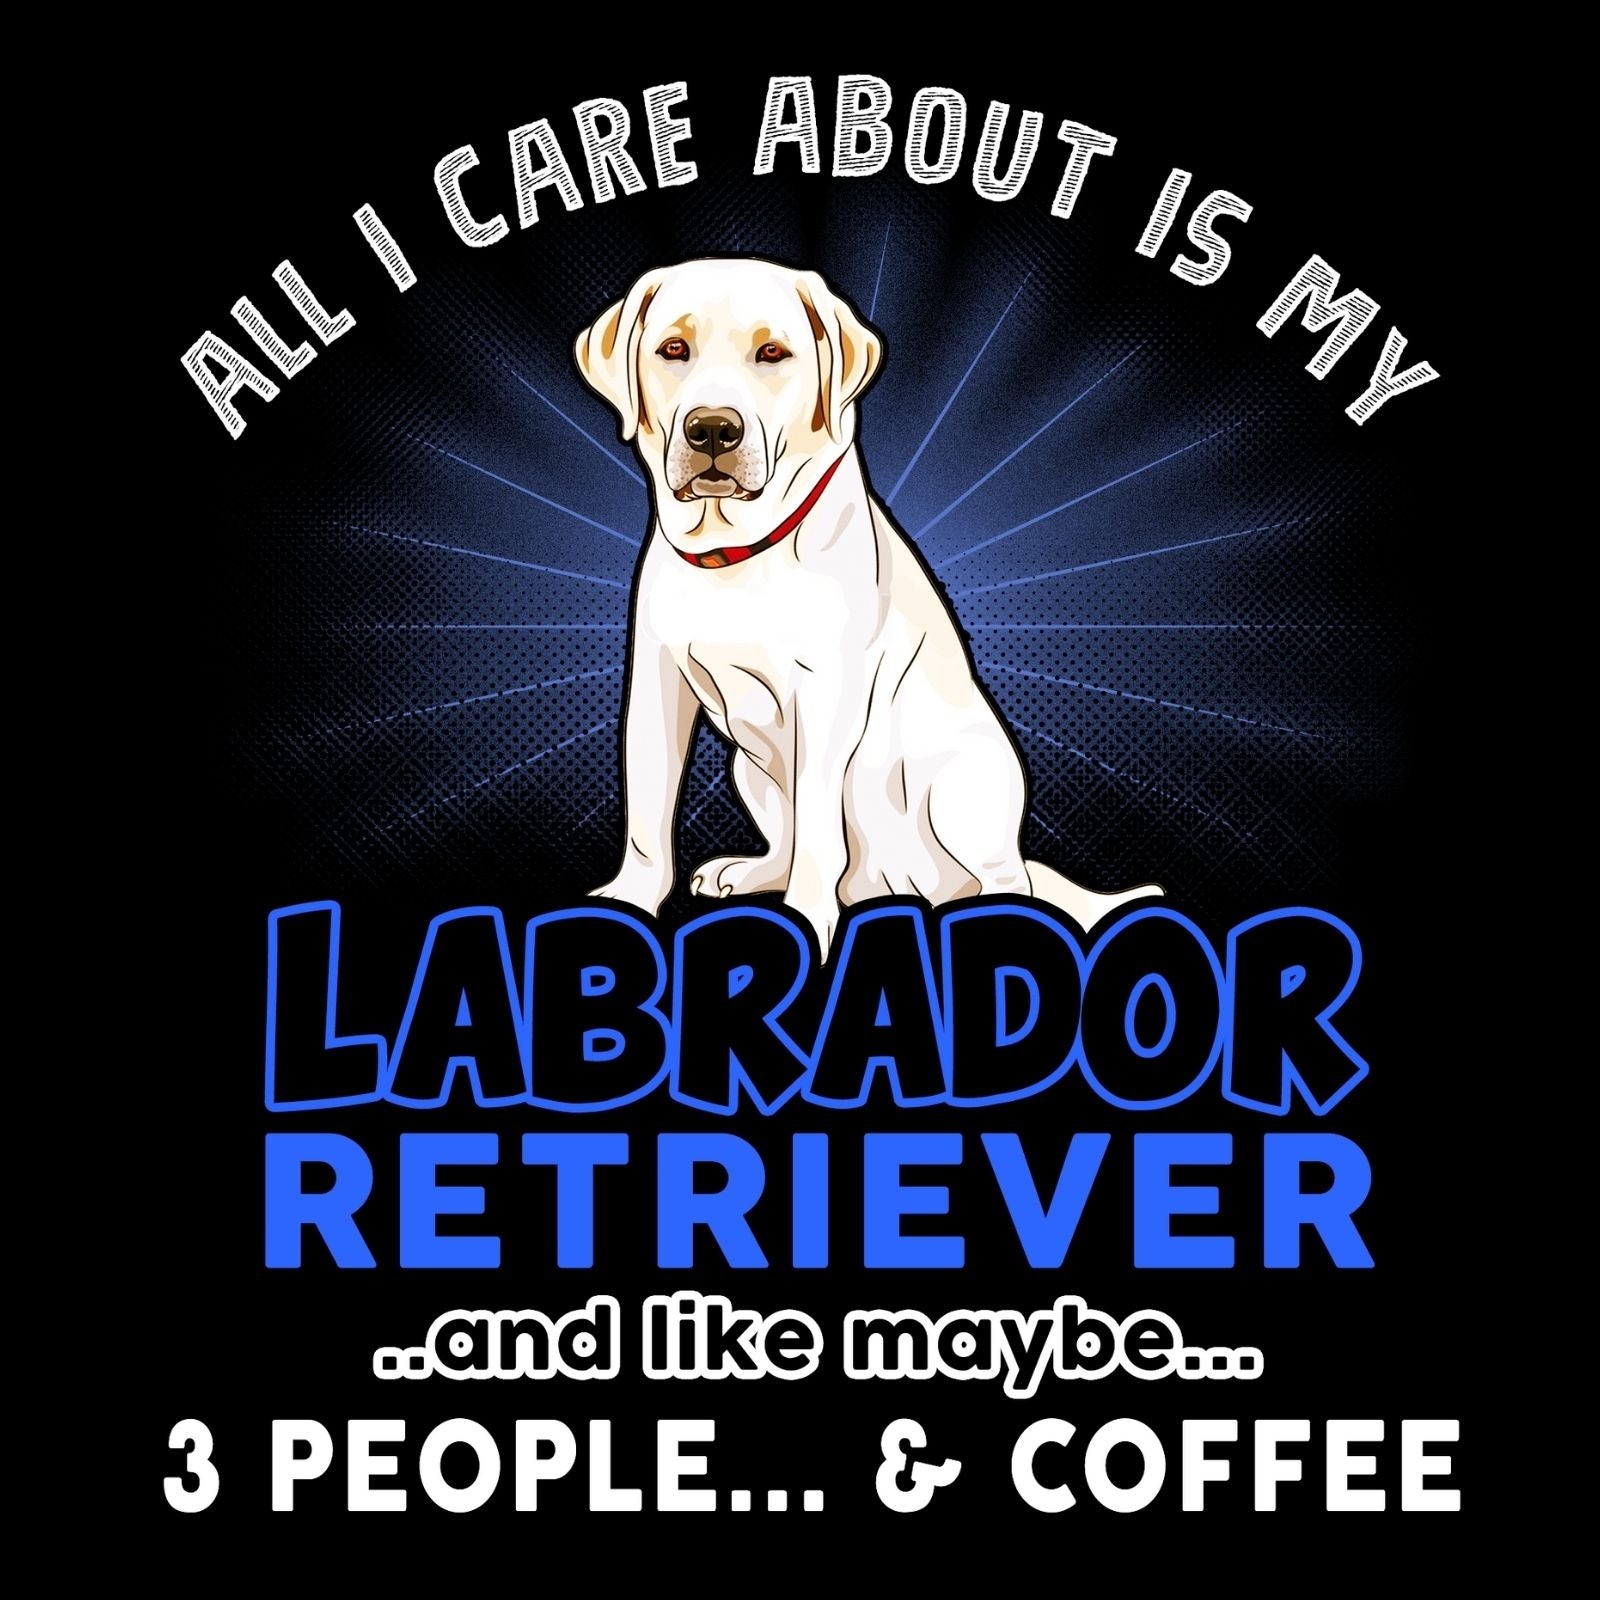 All I Care About Is My Labrador Retriever - Bastard Graphics